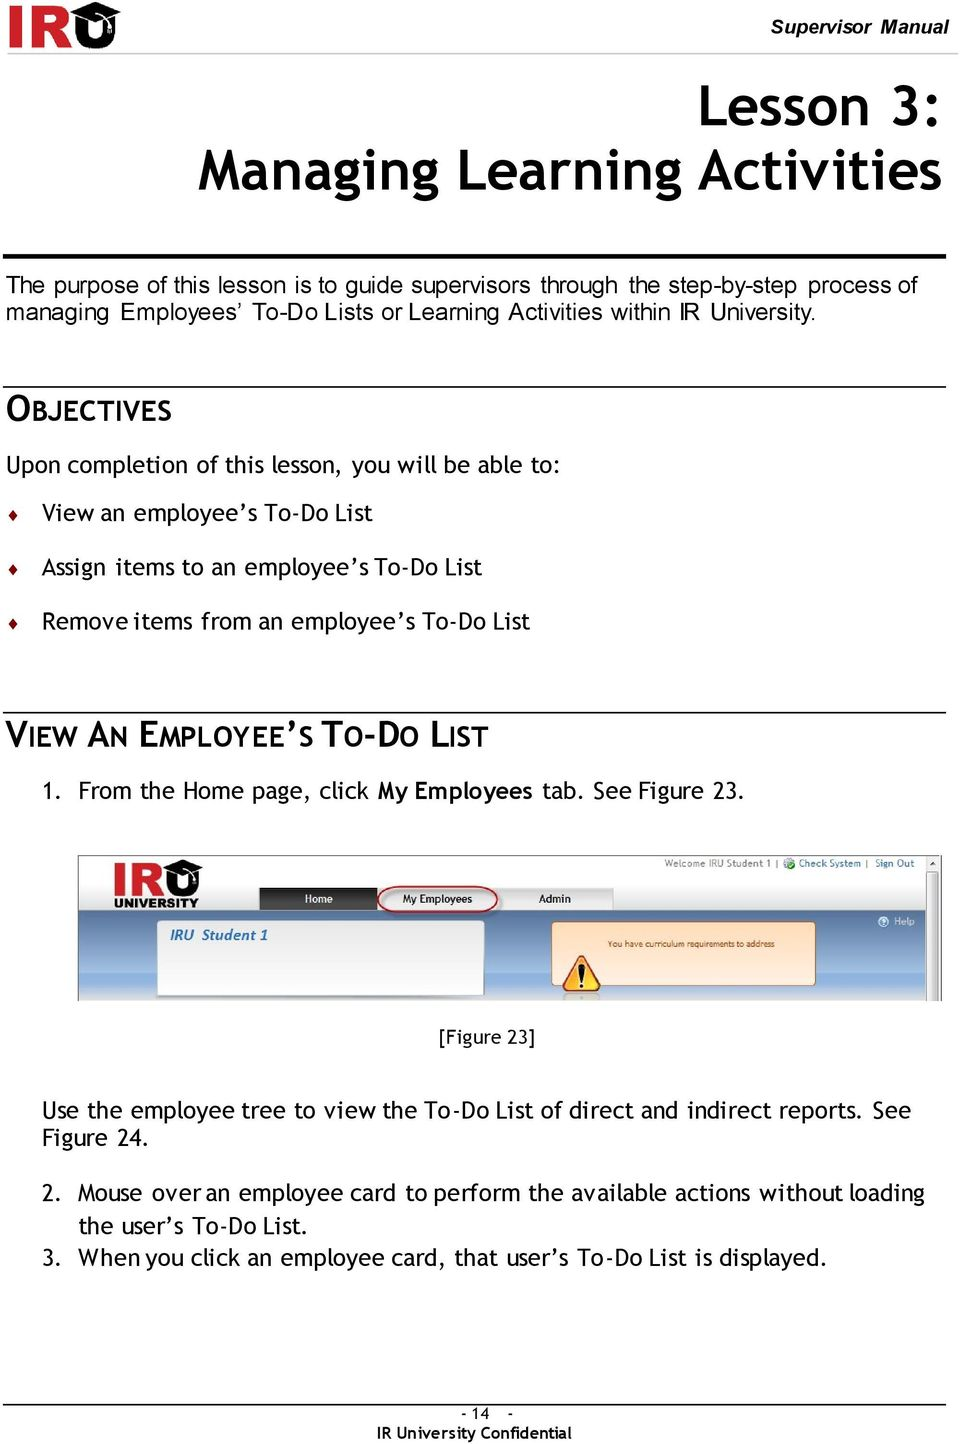 OBJECTIVES Upon completion of this lesson, you will be able to: View an employee s To-Do List Assign items to an employee s To-Do List Remove items from an employee s To-Do List VIEW AN EMPLOYEE